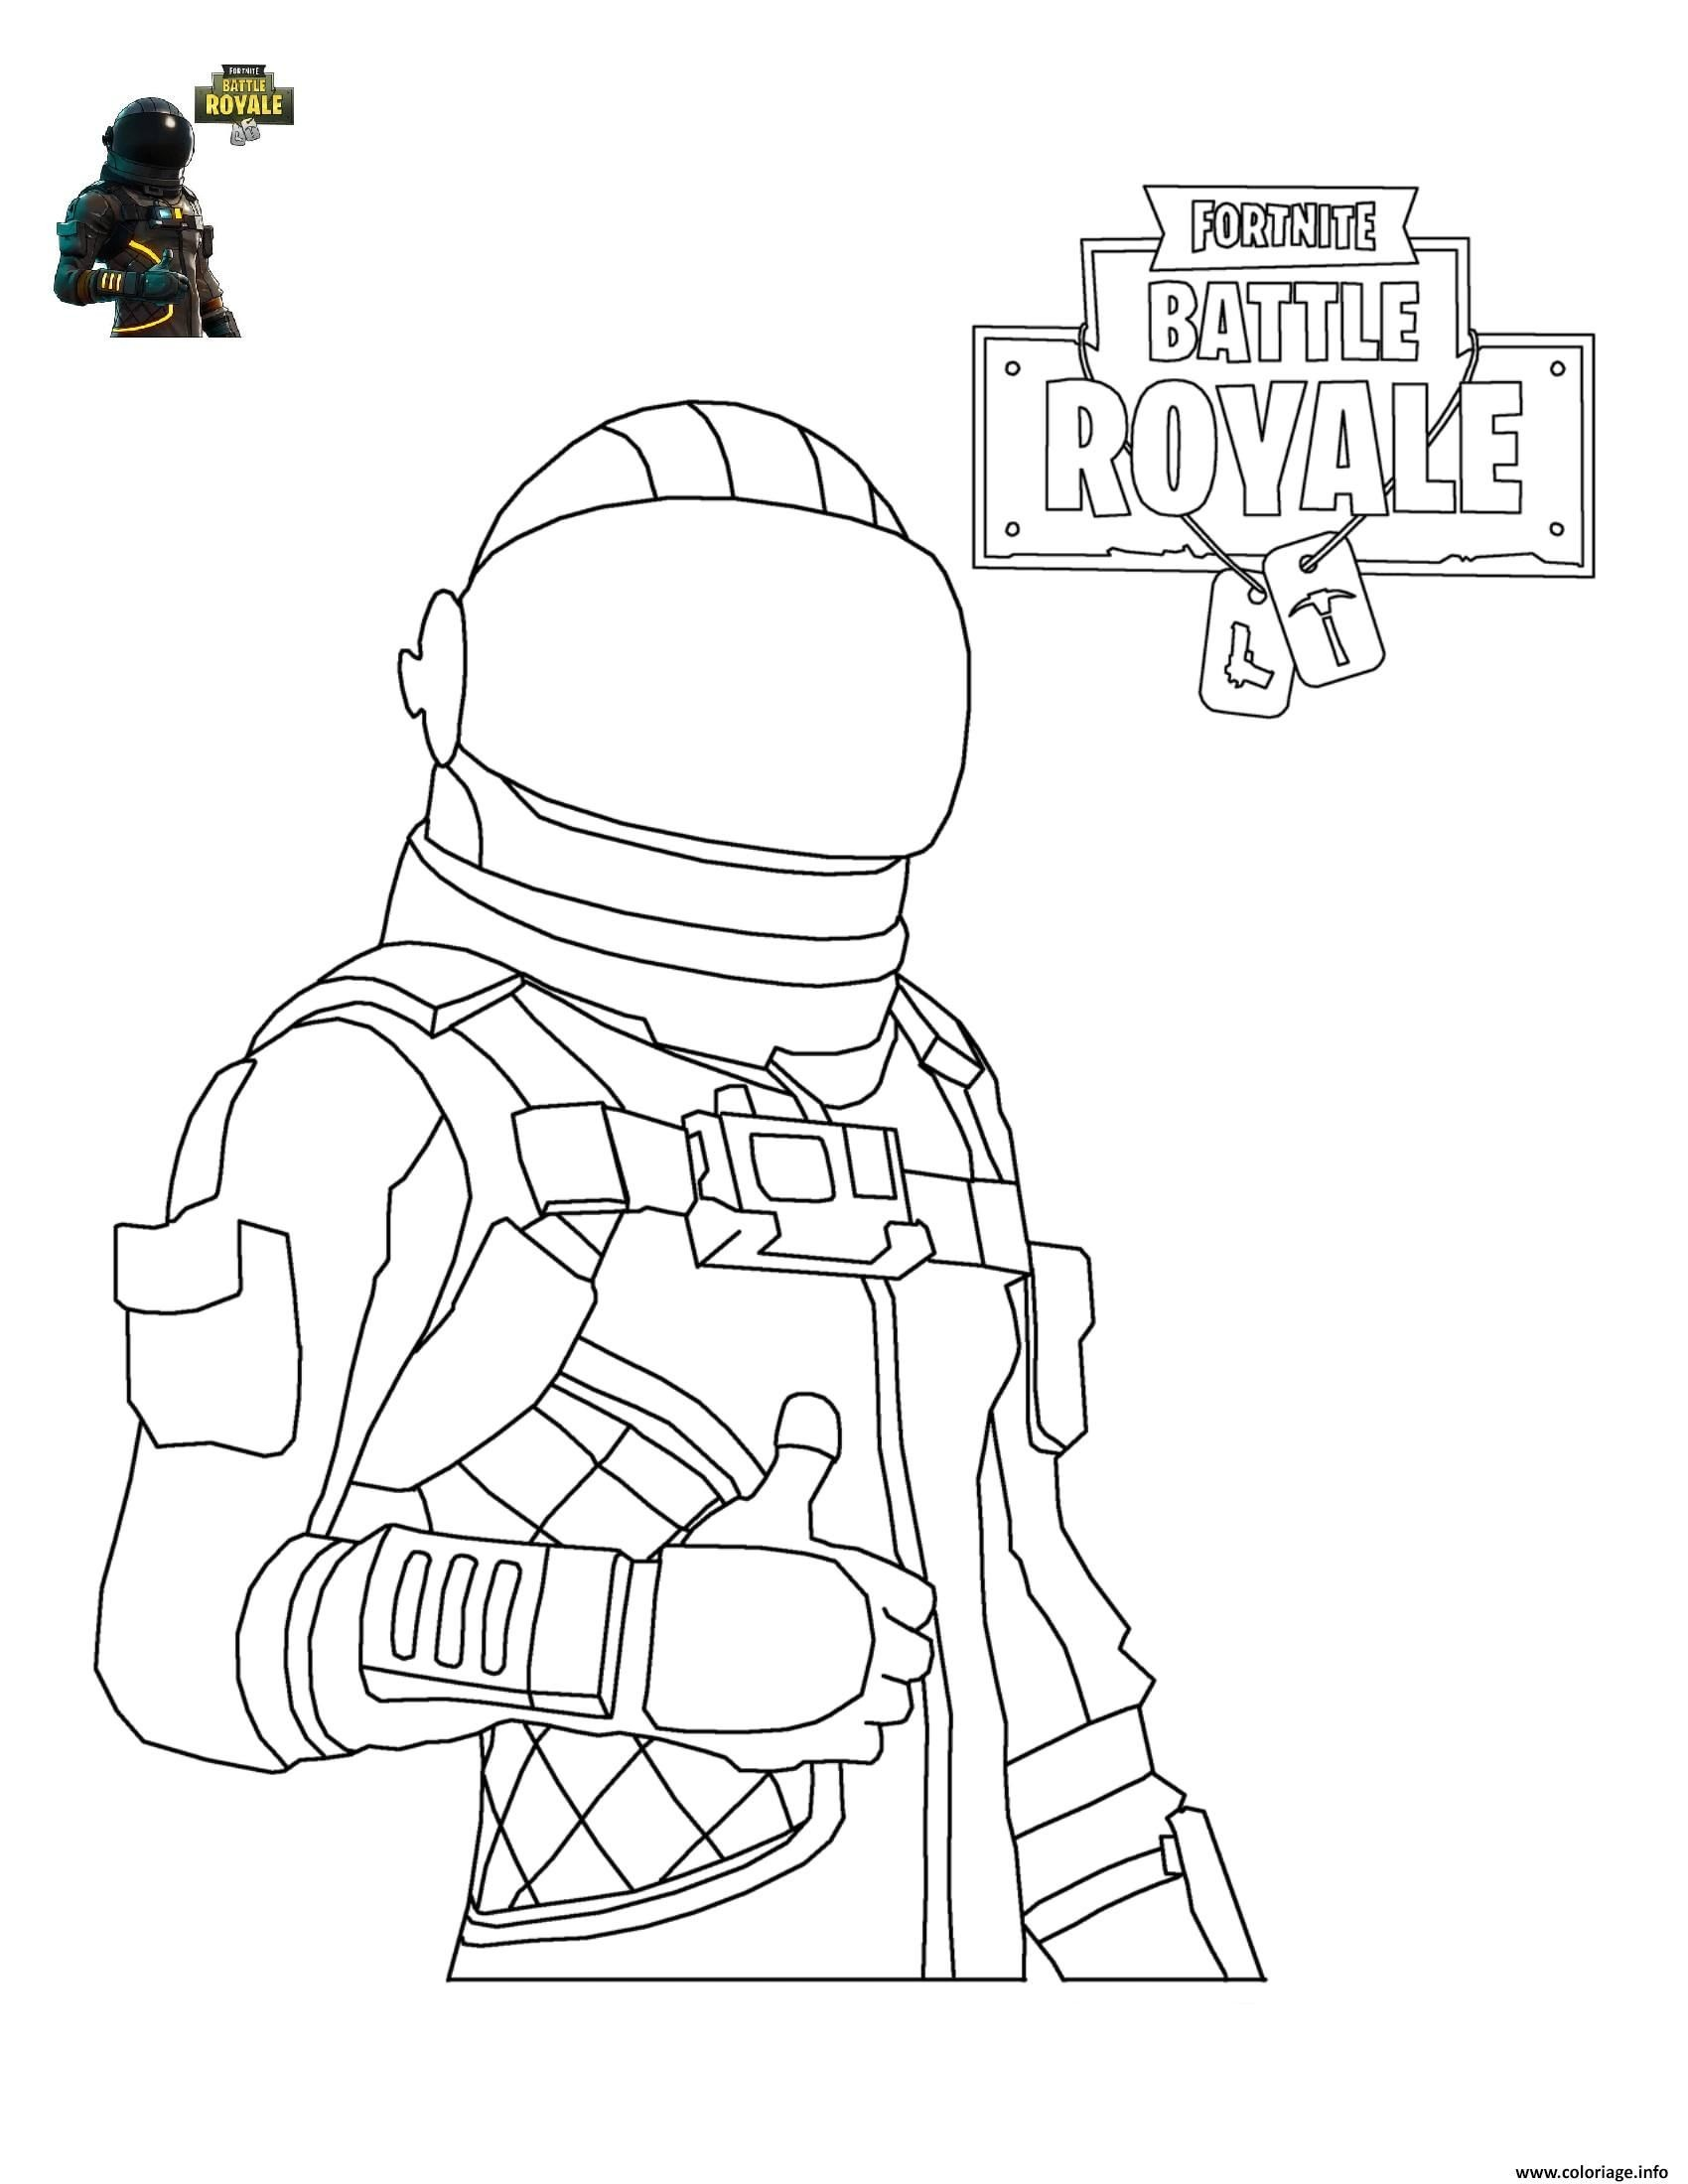 Coloriage De fortnite A Imprimer Gratuitement Awesome Coloriage fortnite Battle Royale Personnage 4   Imprimer En Of Coloriage De fortnite A Imprimer Gratuitement